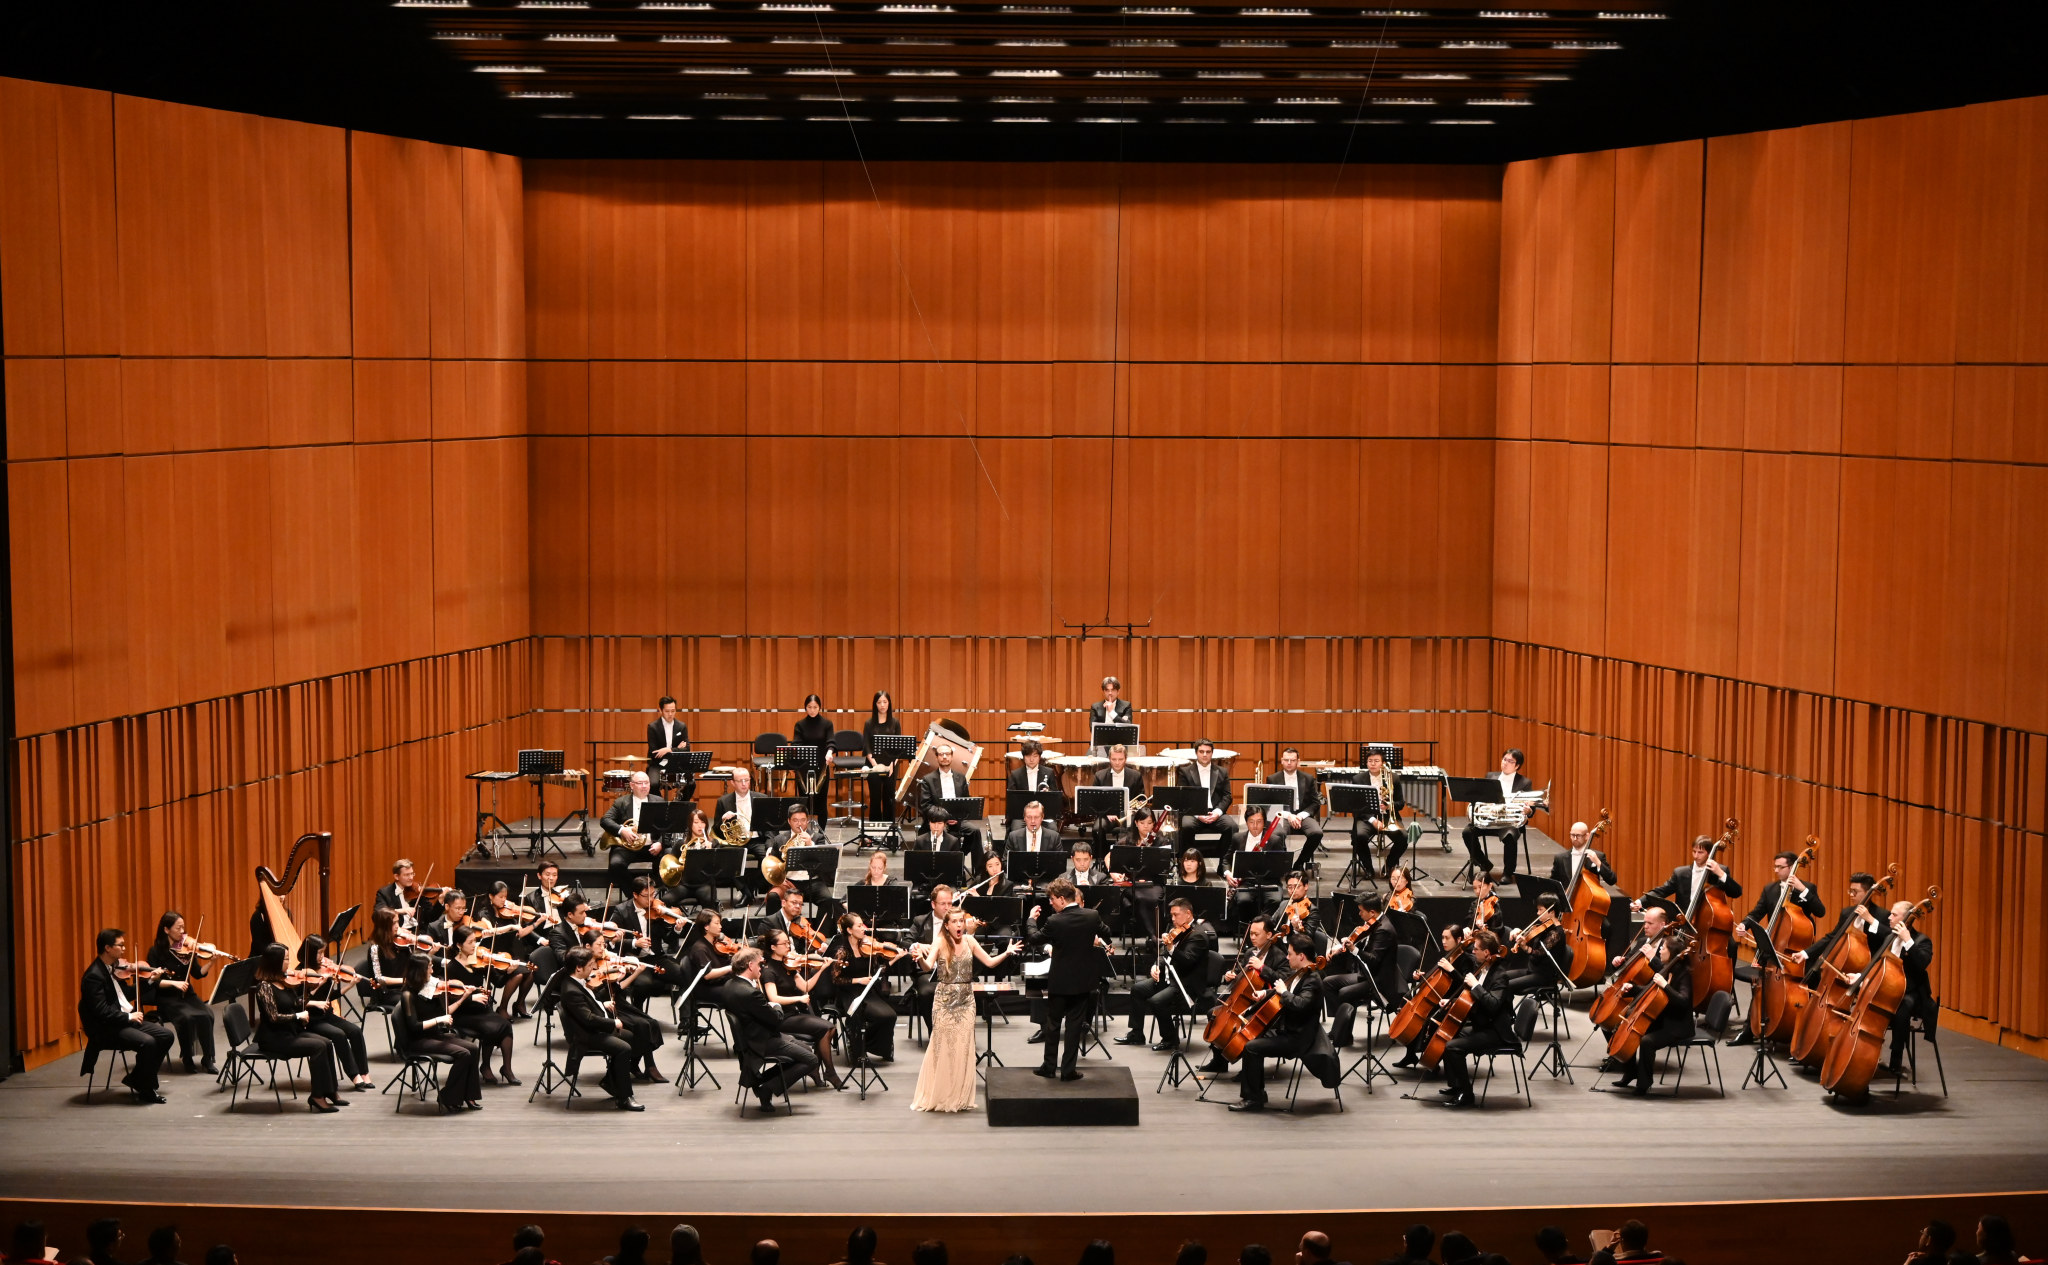 Macao Orchestra December 2020